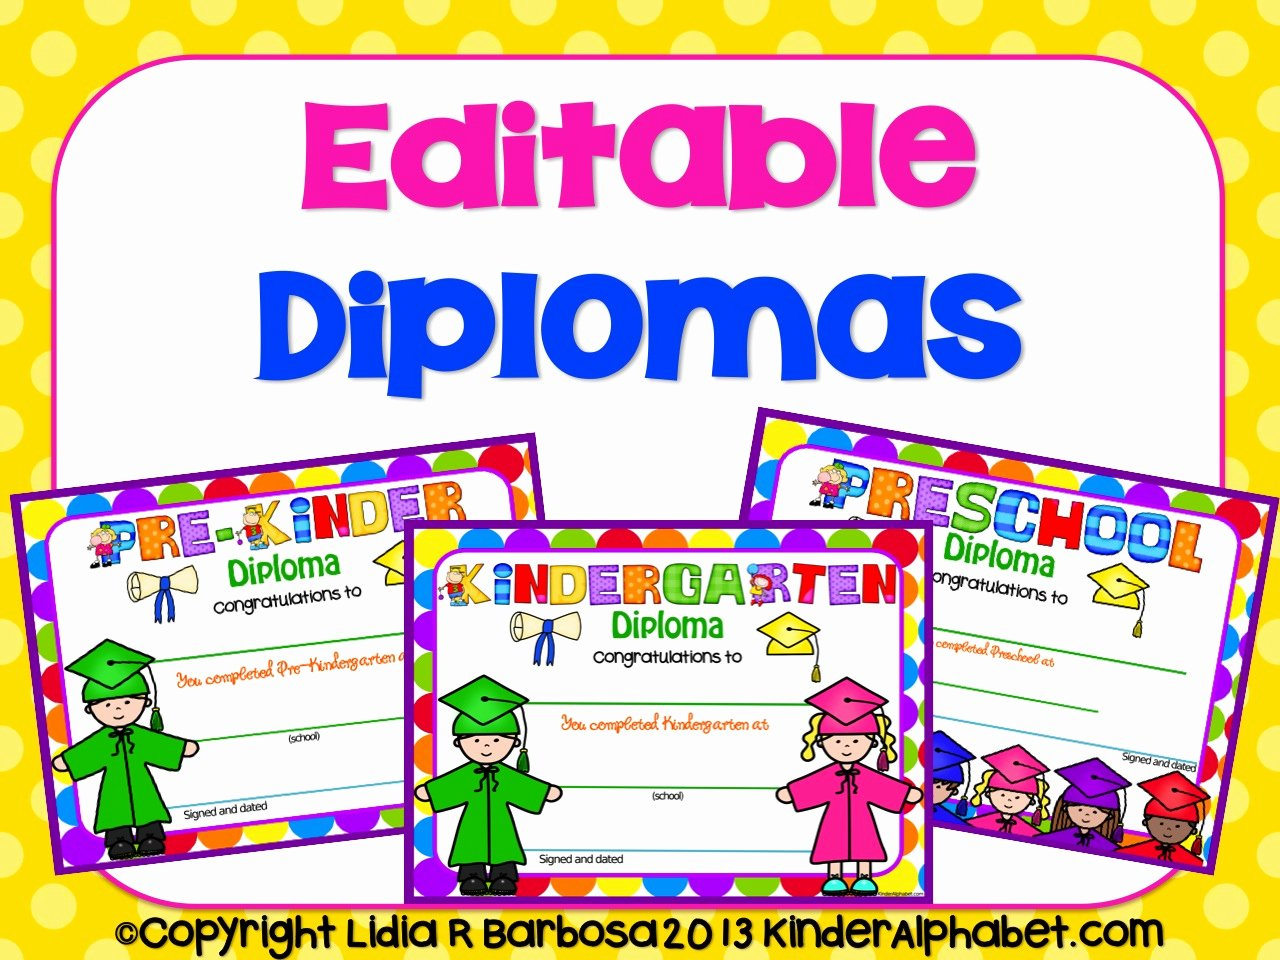 Preschool Graduation Certificate Editable Fresh End Of the Year Ideas